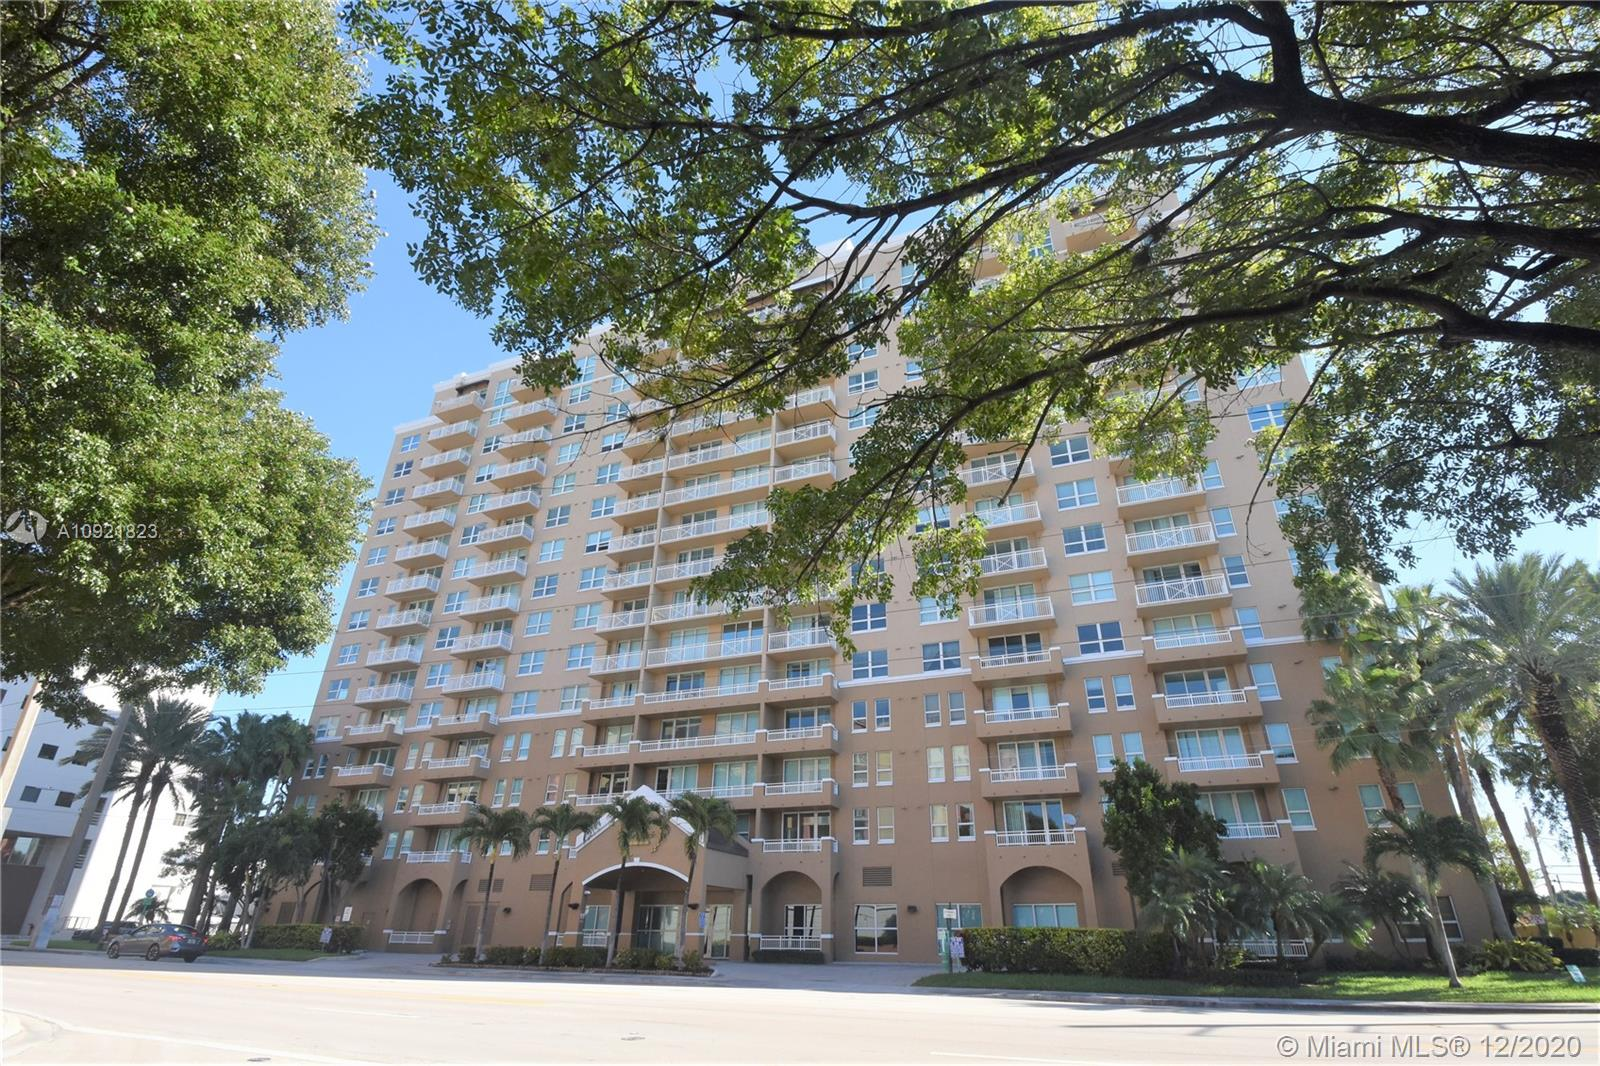 Great condominium unit in a desirable building and location! Spacious corner 2/2 unit, light and bright, has new marble floors throughout, two balconies, 2 parking spaces. Open kitchen with granite countertops. Full size washer and dryer inside the unit. The building is conveniently located on Douglas Road (37th Ave.) facing Coral Gables and in close proximity to all that Downtown Coral Gables has to offer -- formal and informal restaurants, bars, theatres, galleries, banks, hospitals, public transportation, the Metrorail, and so much more. Da Vinci on Douglas has a relaxing pool, an awesome fitness center, sauna, a conference room/social room and more!  Management on site weekdays; great reserves.  Pets ok.  This is a great opportunity at an affordable price.